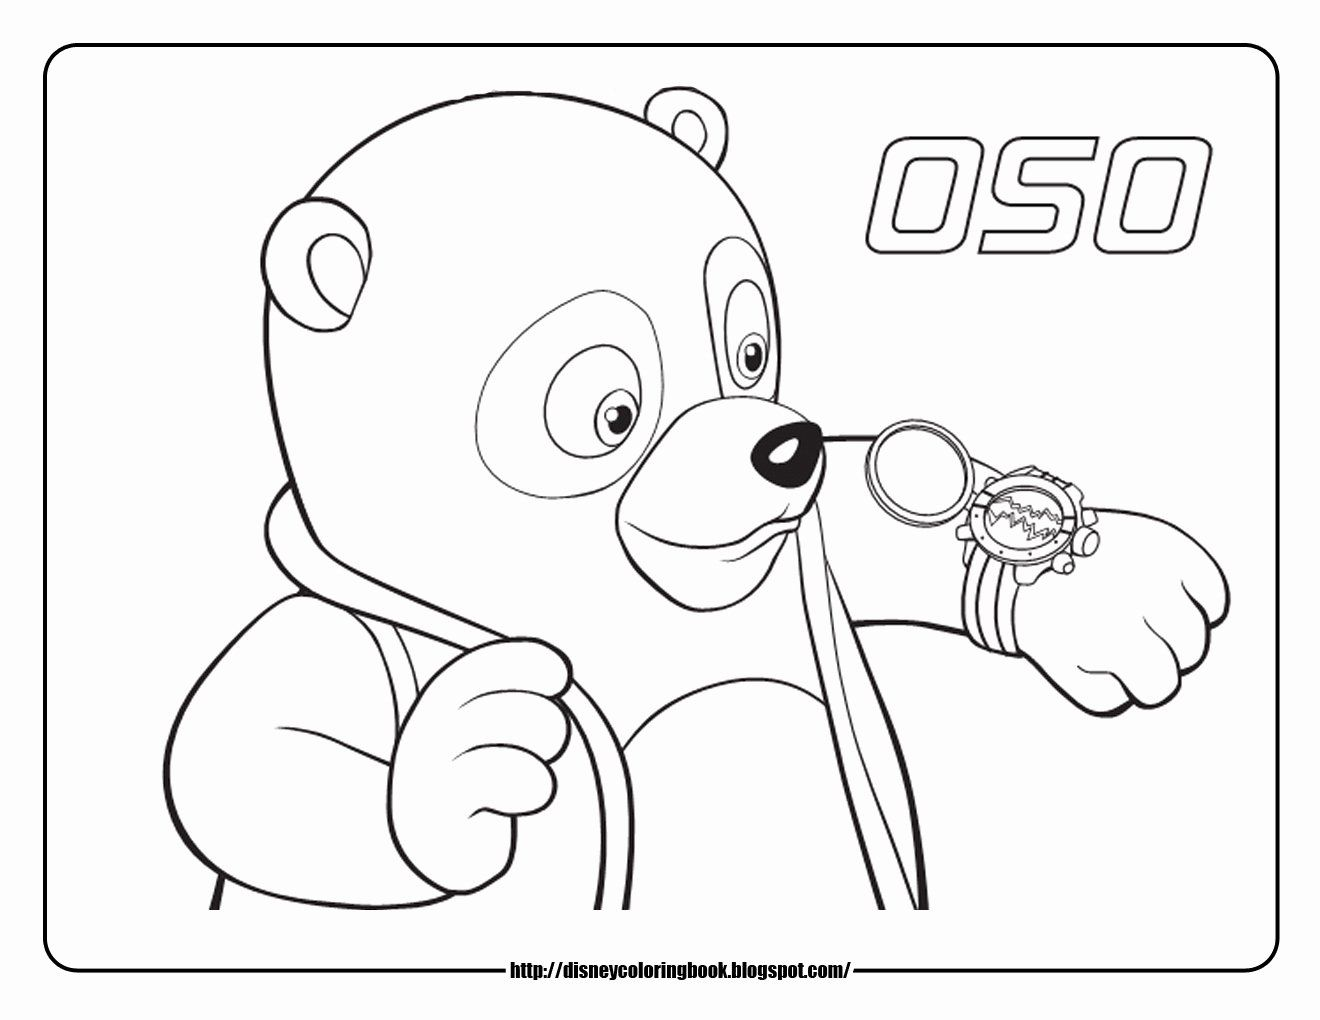 Coloring Pages Disney Junior Beautiful Disney Coloring Pages And Sheets For Kids Special Agent In 2020 Disney Coloring Pages Summer Coloring Pages Coloring Pages